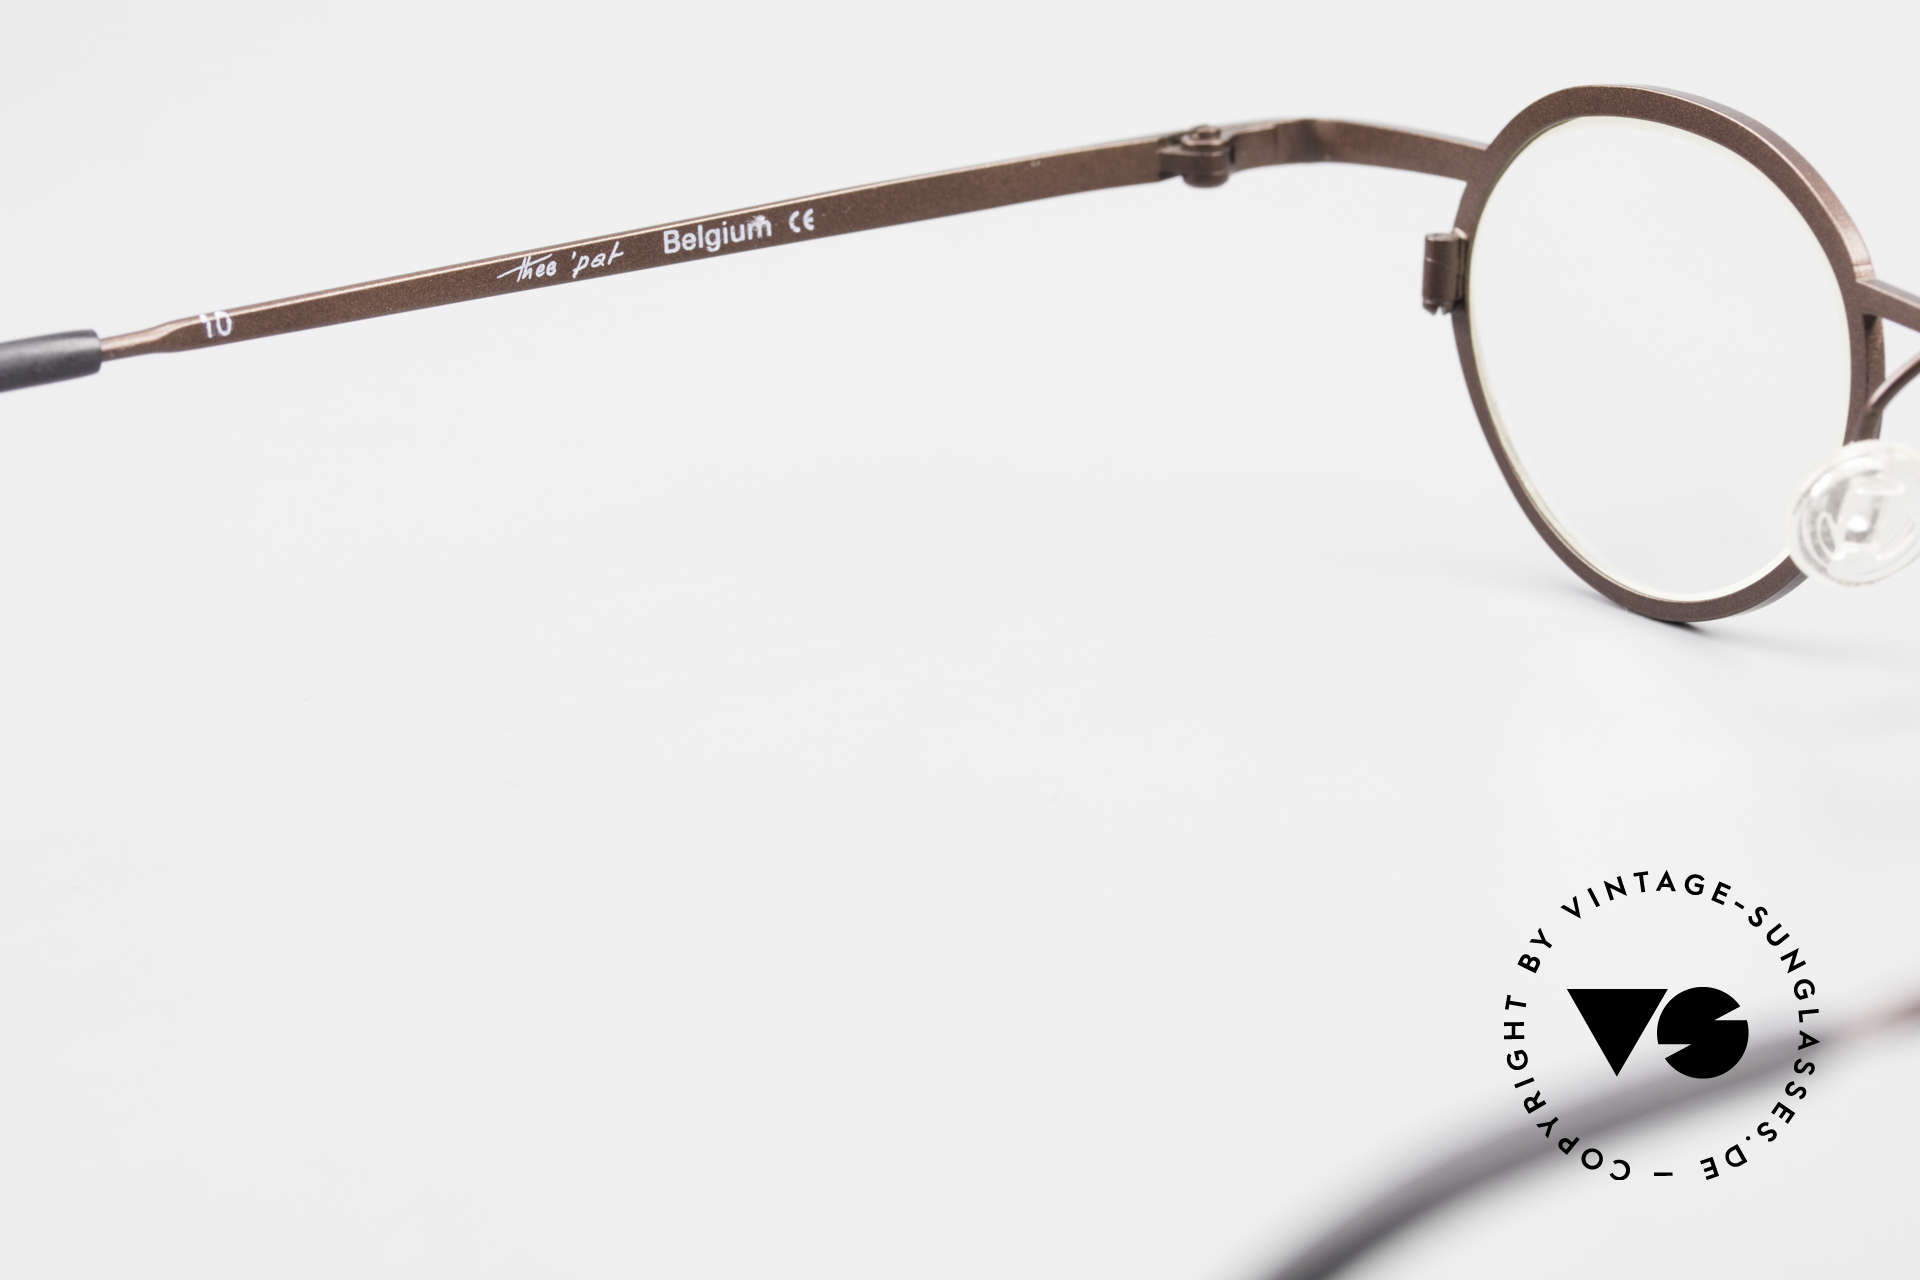 Theo Belgium Pat Avant-Garde Vintage Specs 90s, the demos lenses should be replaced with prescriptions, Made for Men and Women